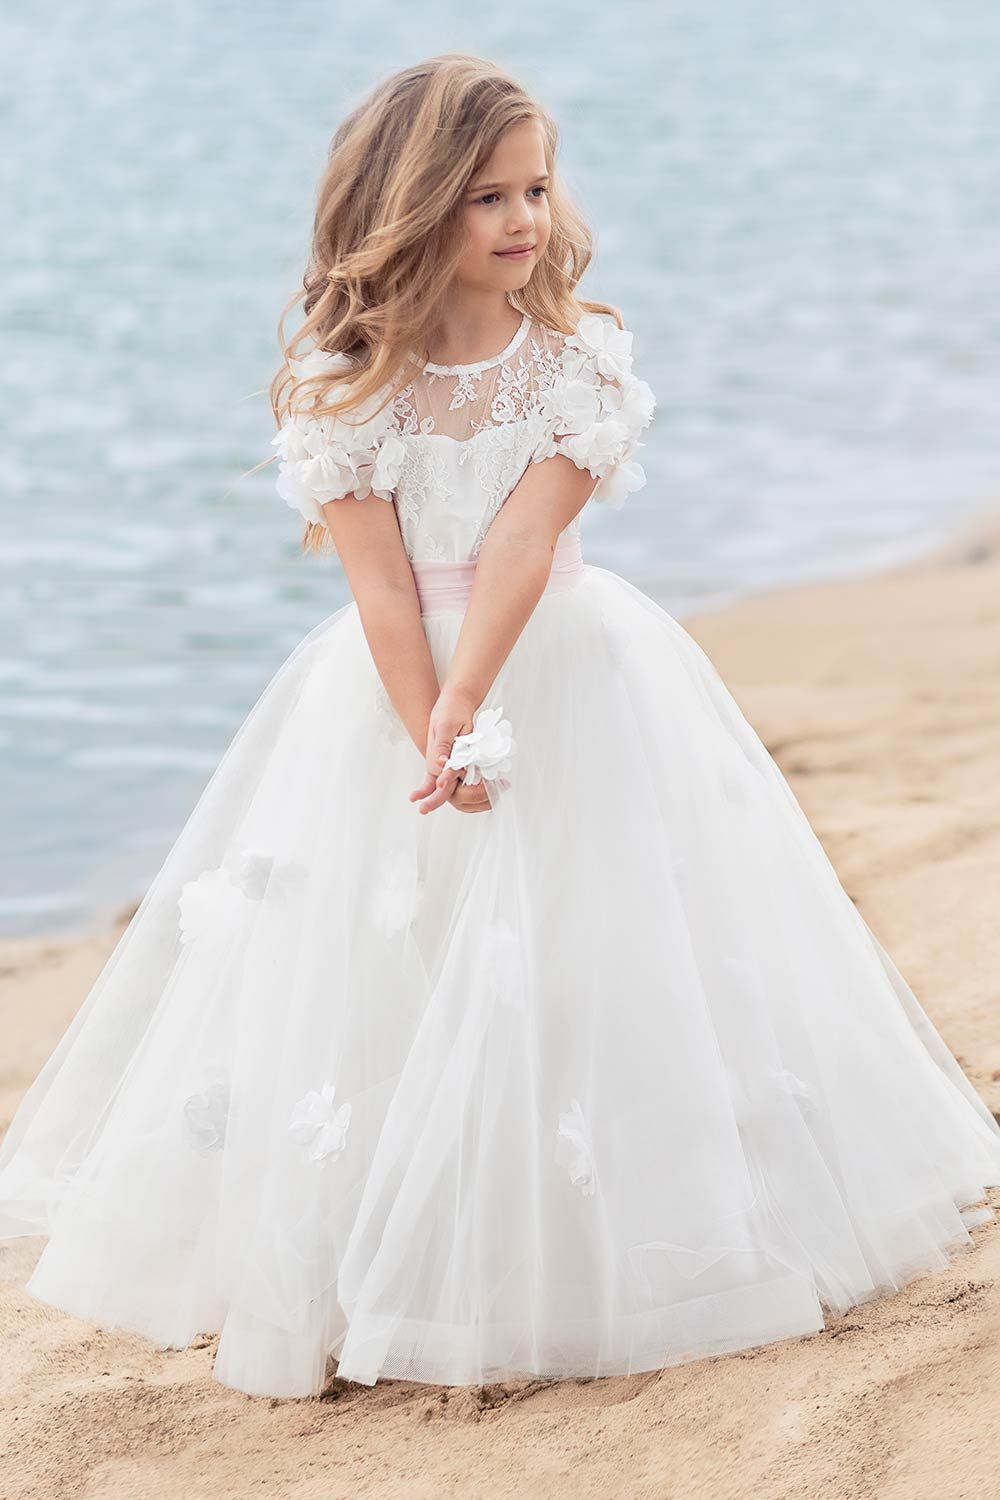 Cup sleeve ball gown with lace bodice and handmade flower decor